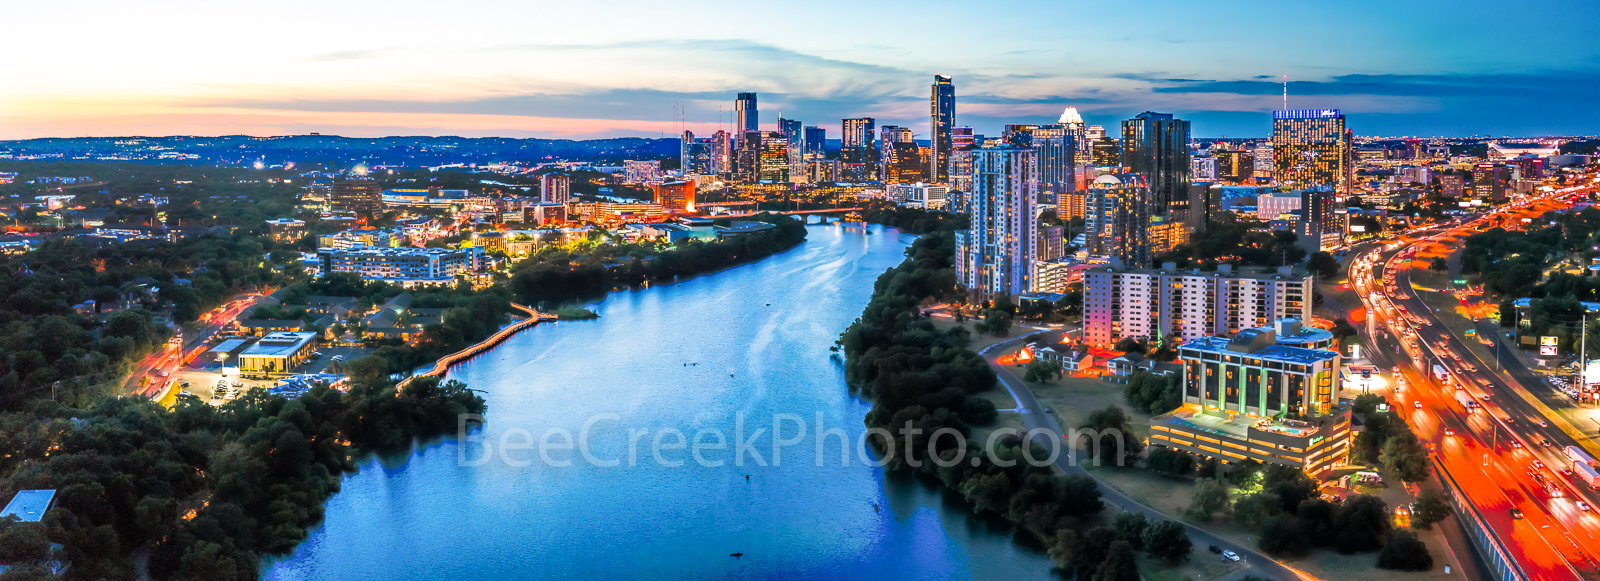 Austin Skyline at Twilight Panorama, Austin skyline pictures, Austin skyline pictures, images of austin skyline, aerial, drone, Austin, night, twilight, dark, Lady Bird Lake, high rise buildings, arch, photo